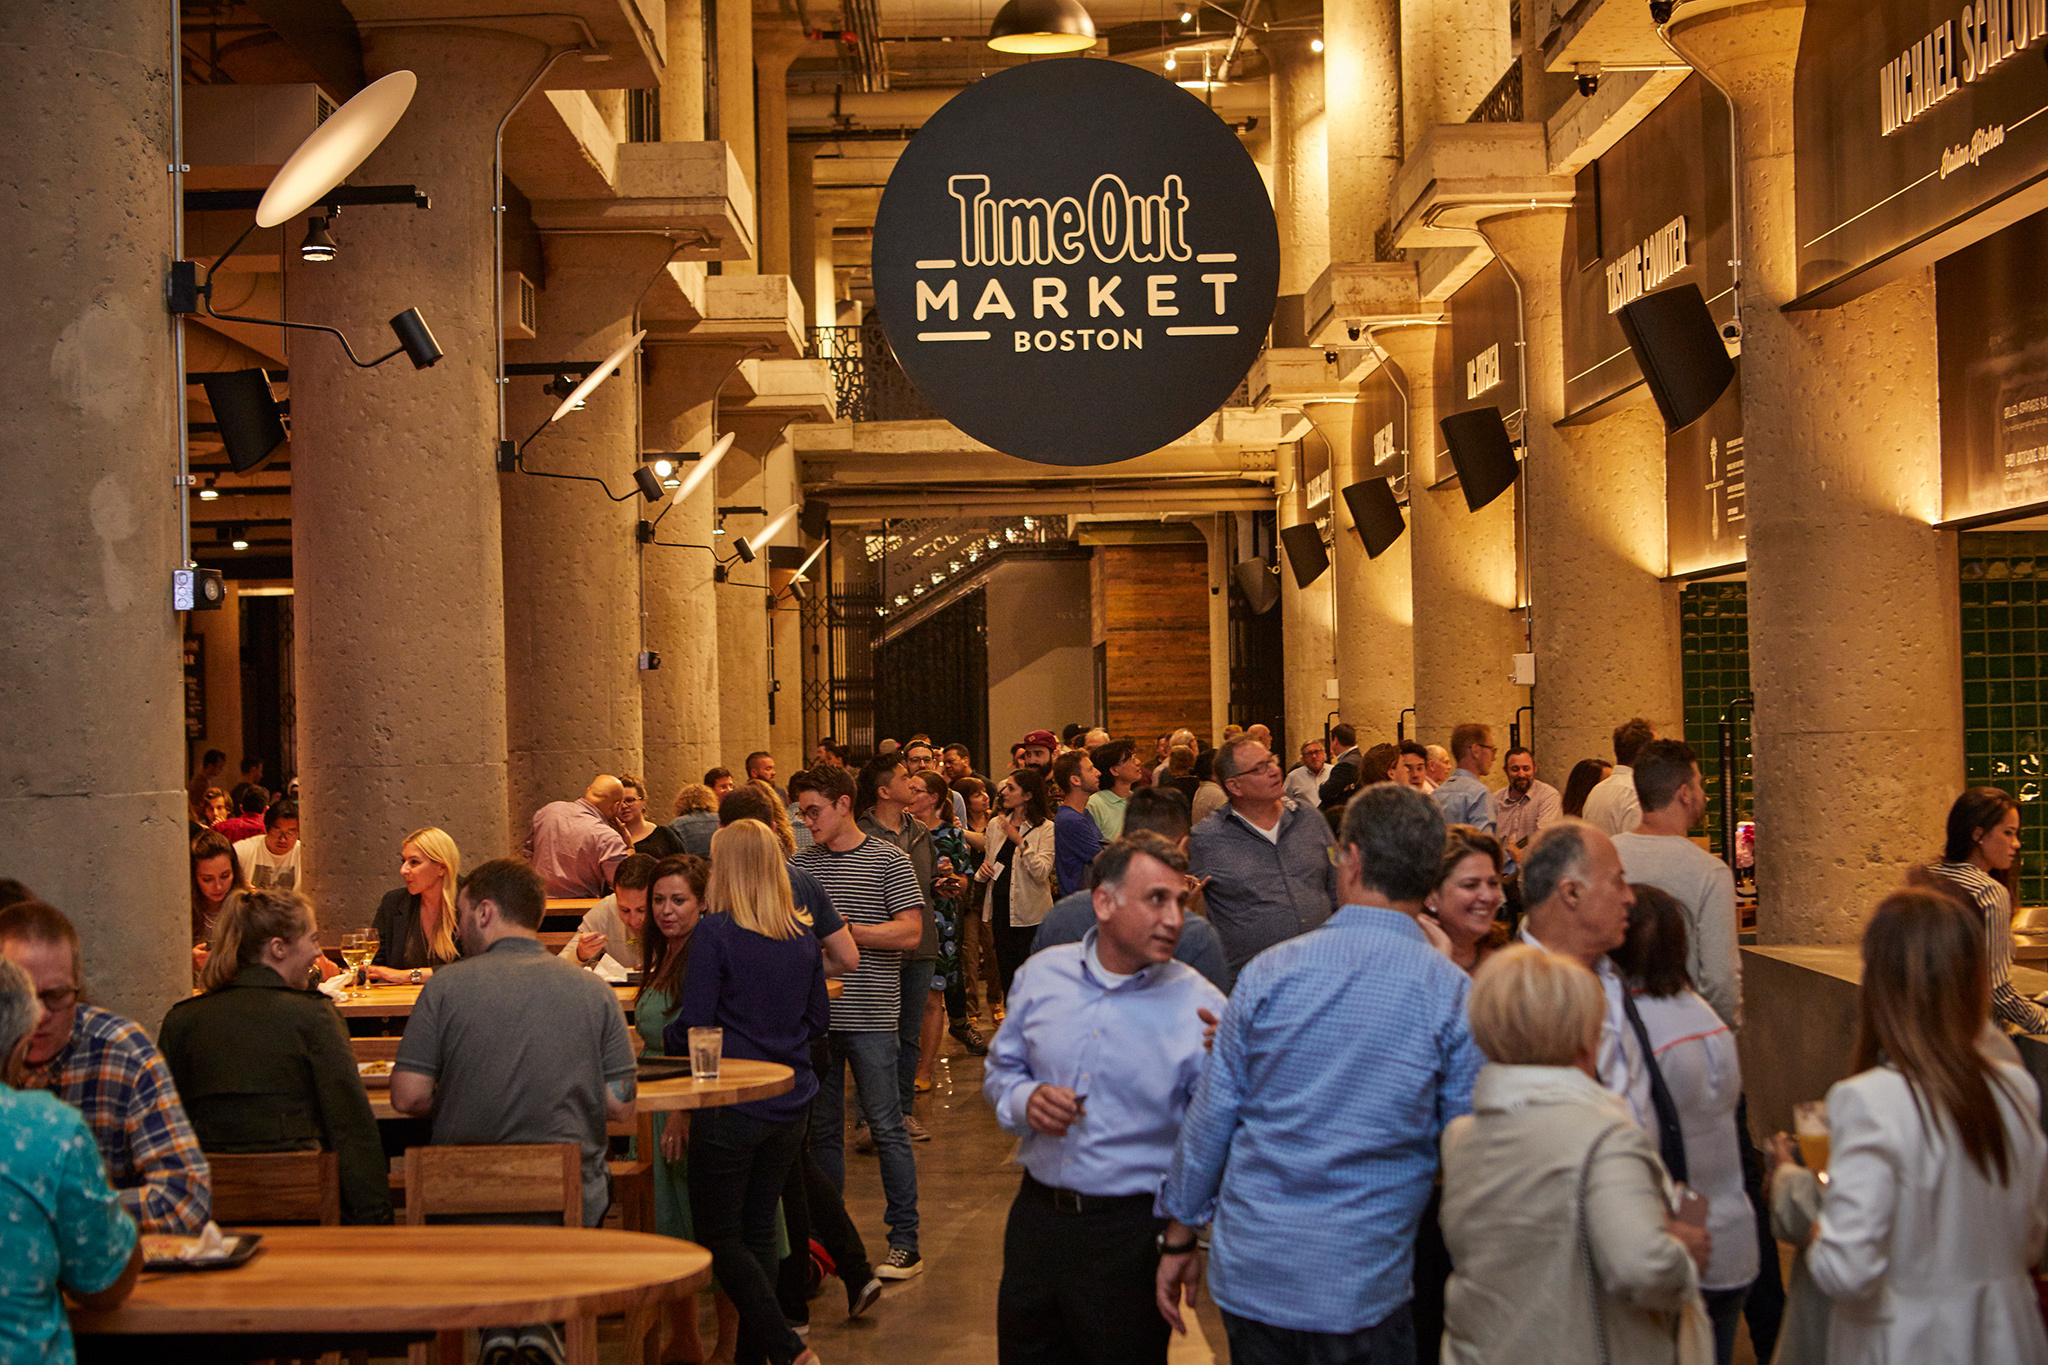 Time Out Market Boston | Chefs, Location, Information and Events